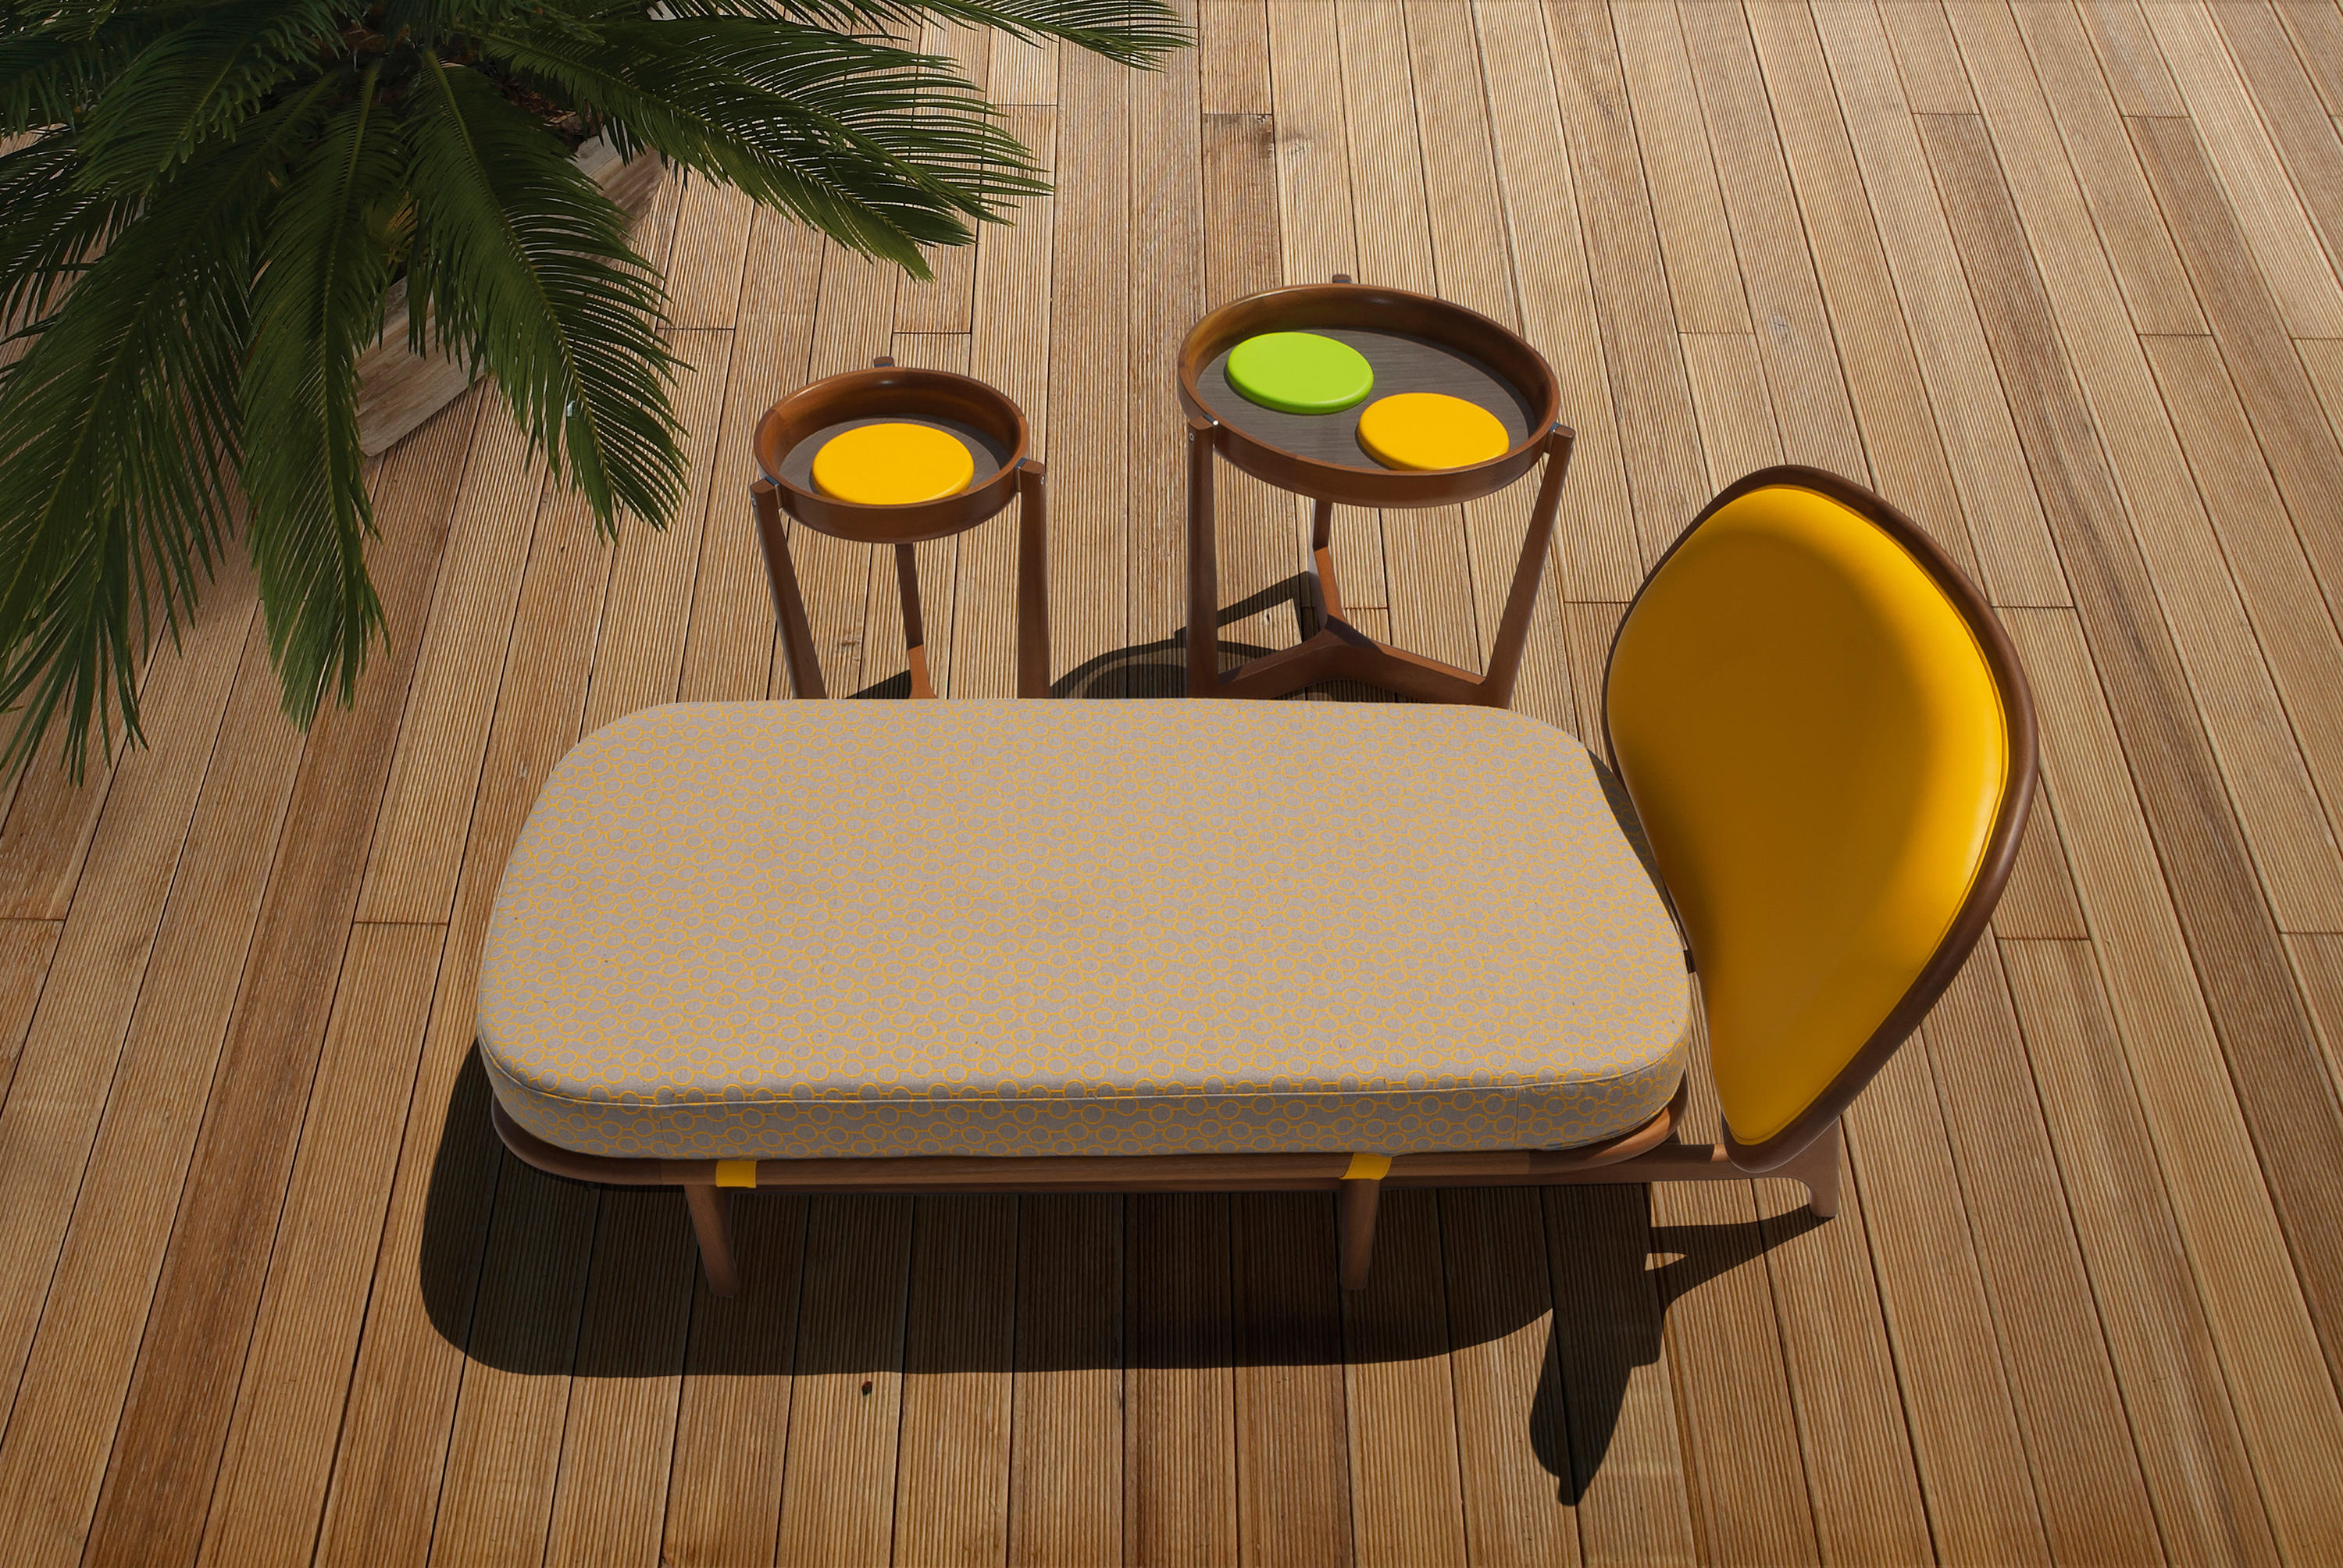 ... 1292 outdoor armchair by Tecni Nova